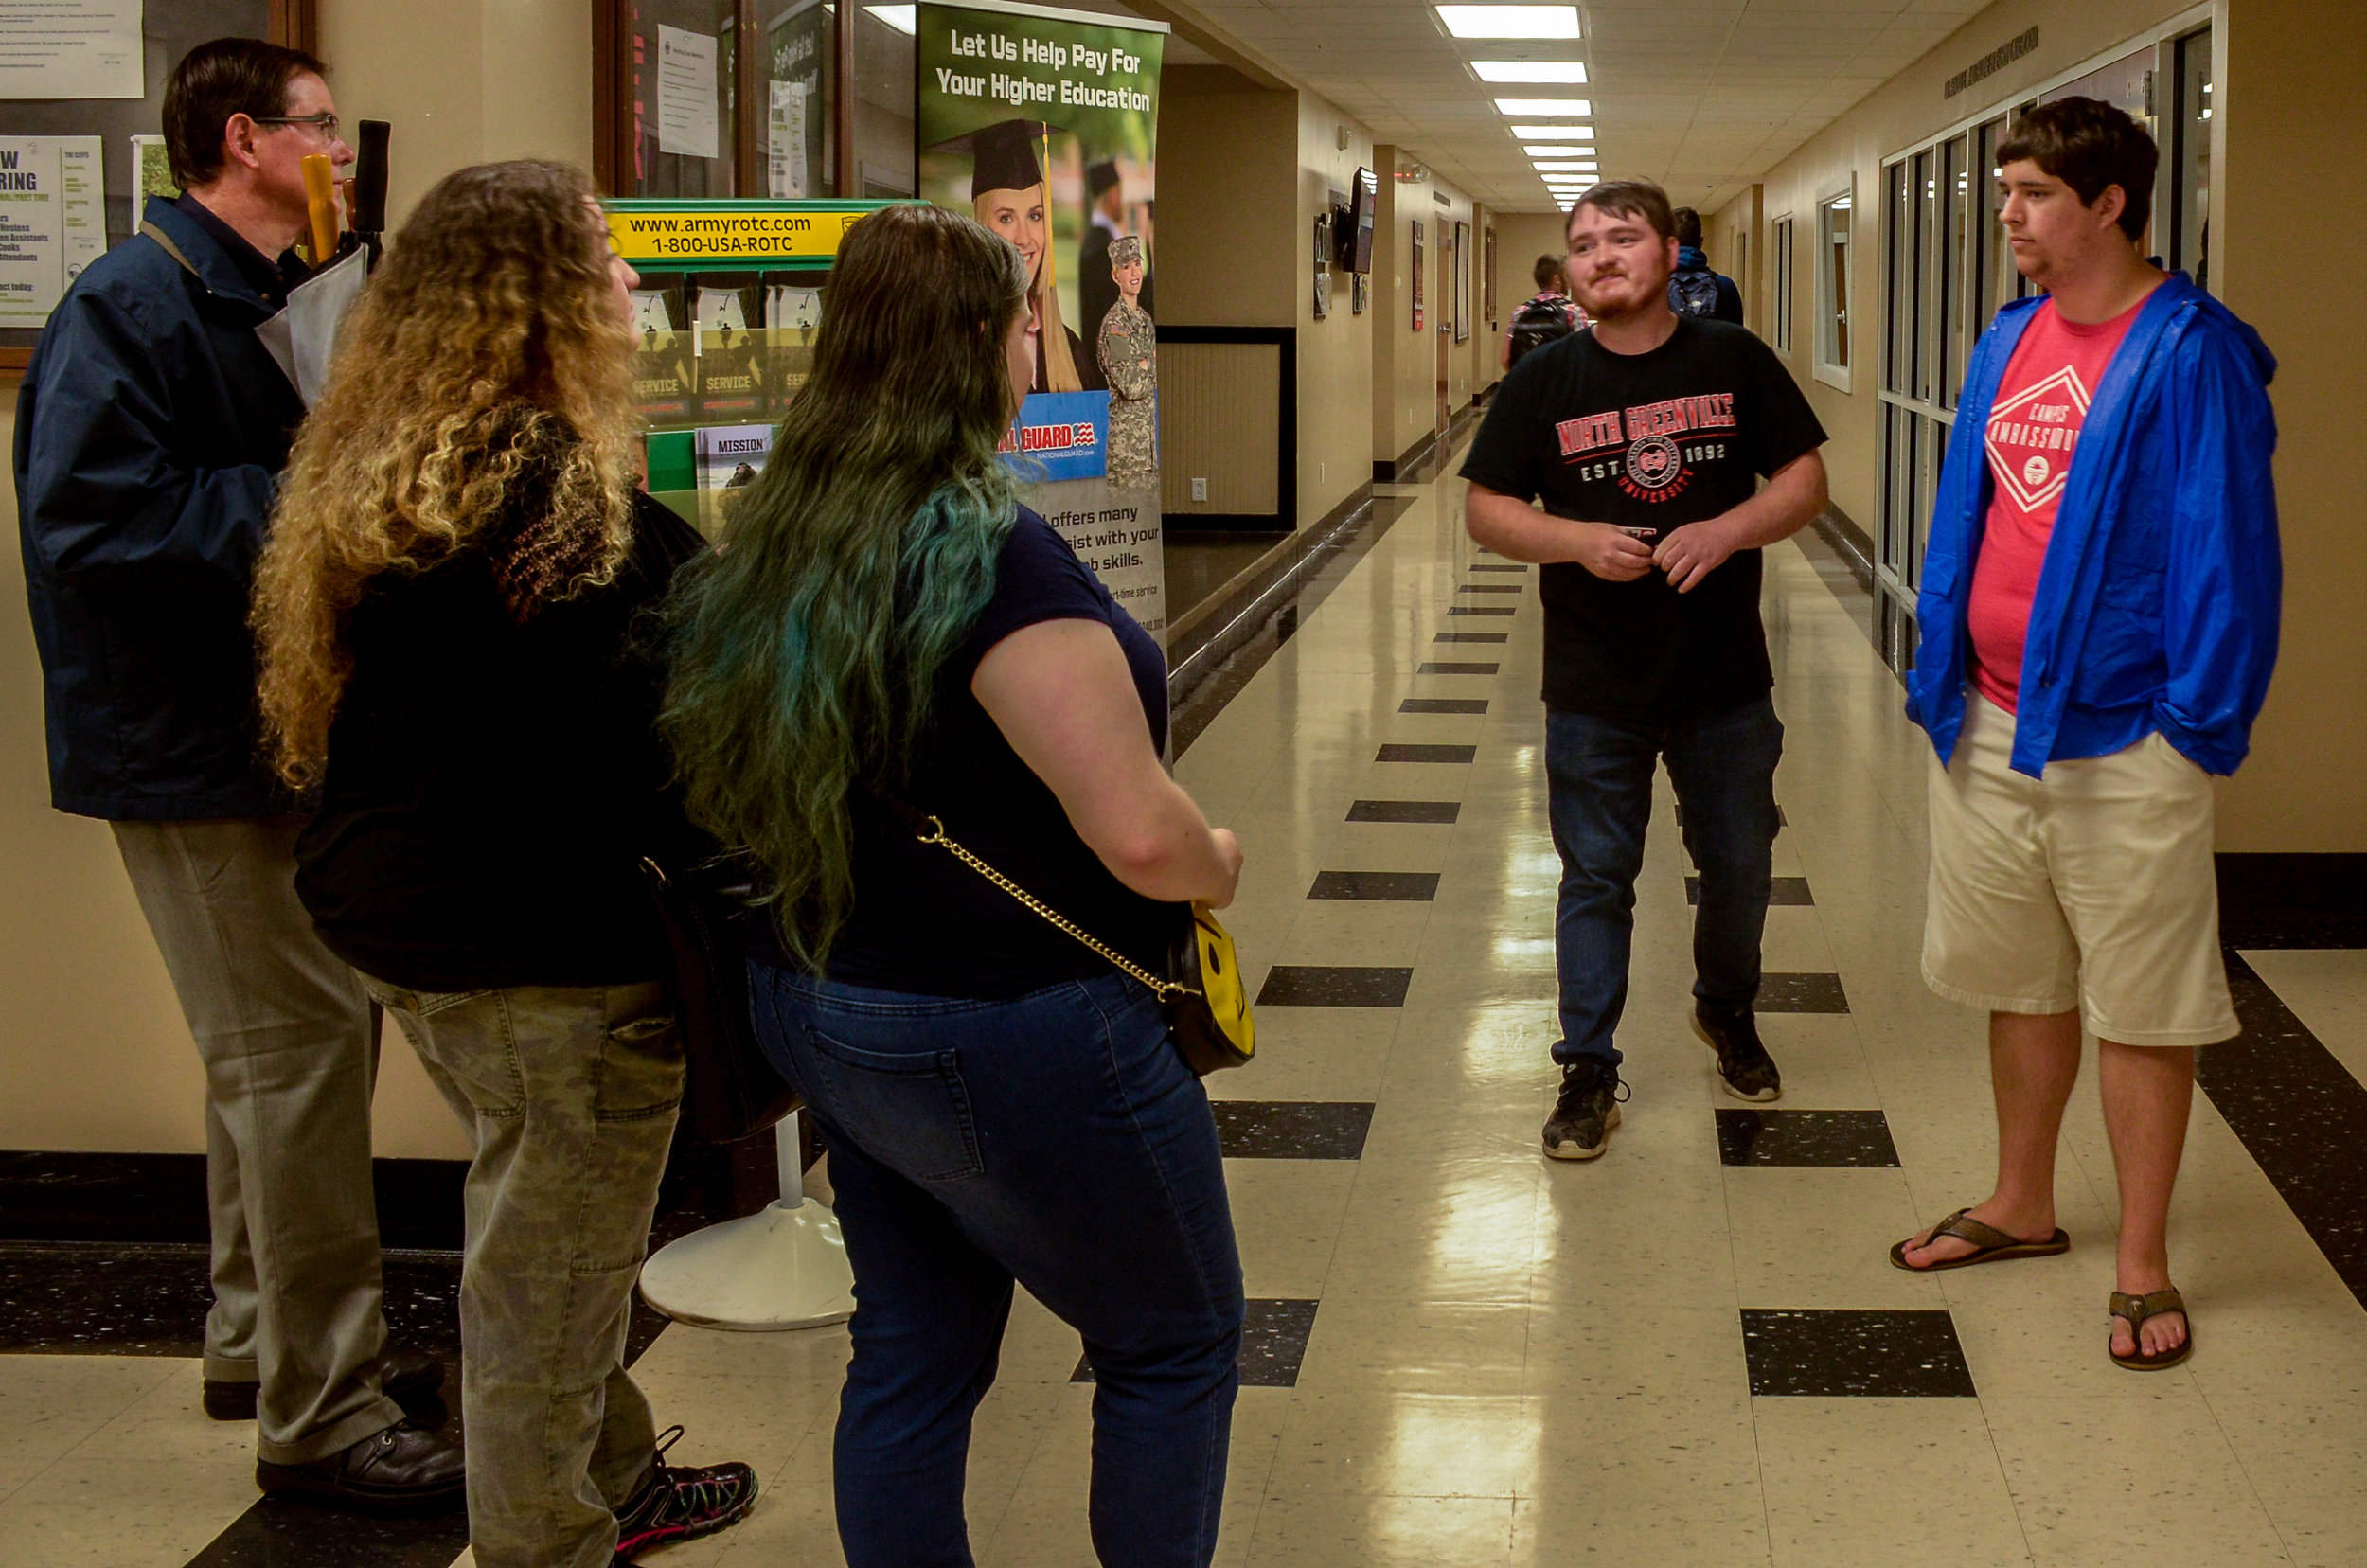 NGU students provide tours to potential Crusaders showing where students hang out, buy books and play games.